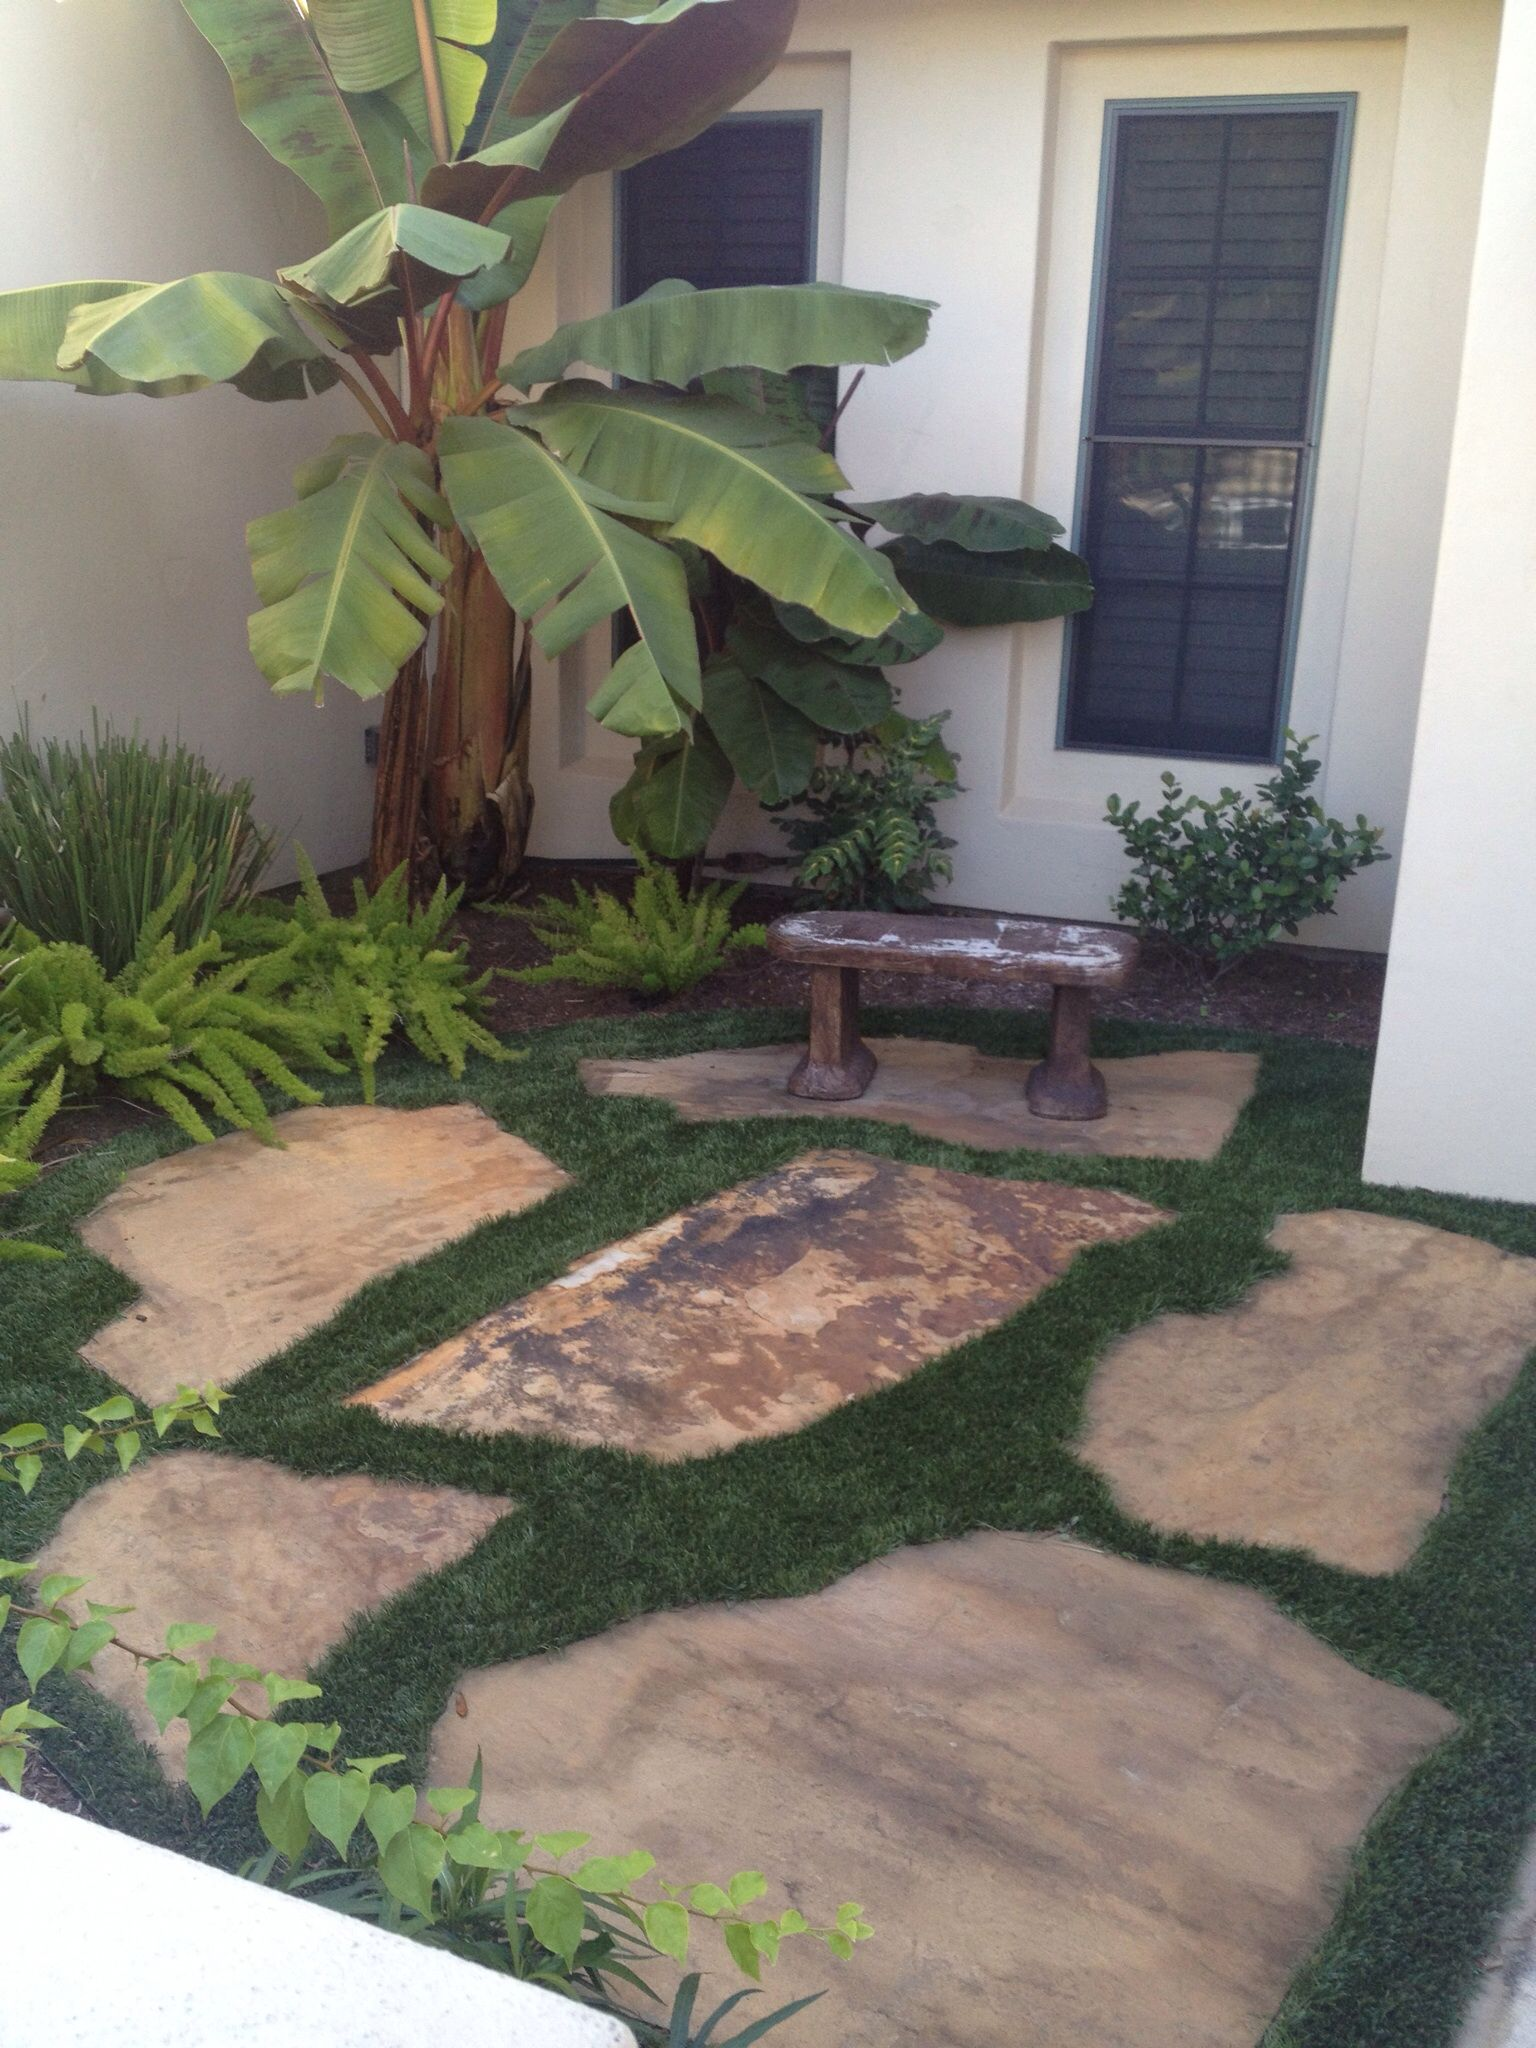 Enjoy Gardening Without The Breaking Your Back With This: Relax And Enjoy Your Courtyard Without The Maintenance